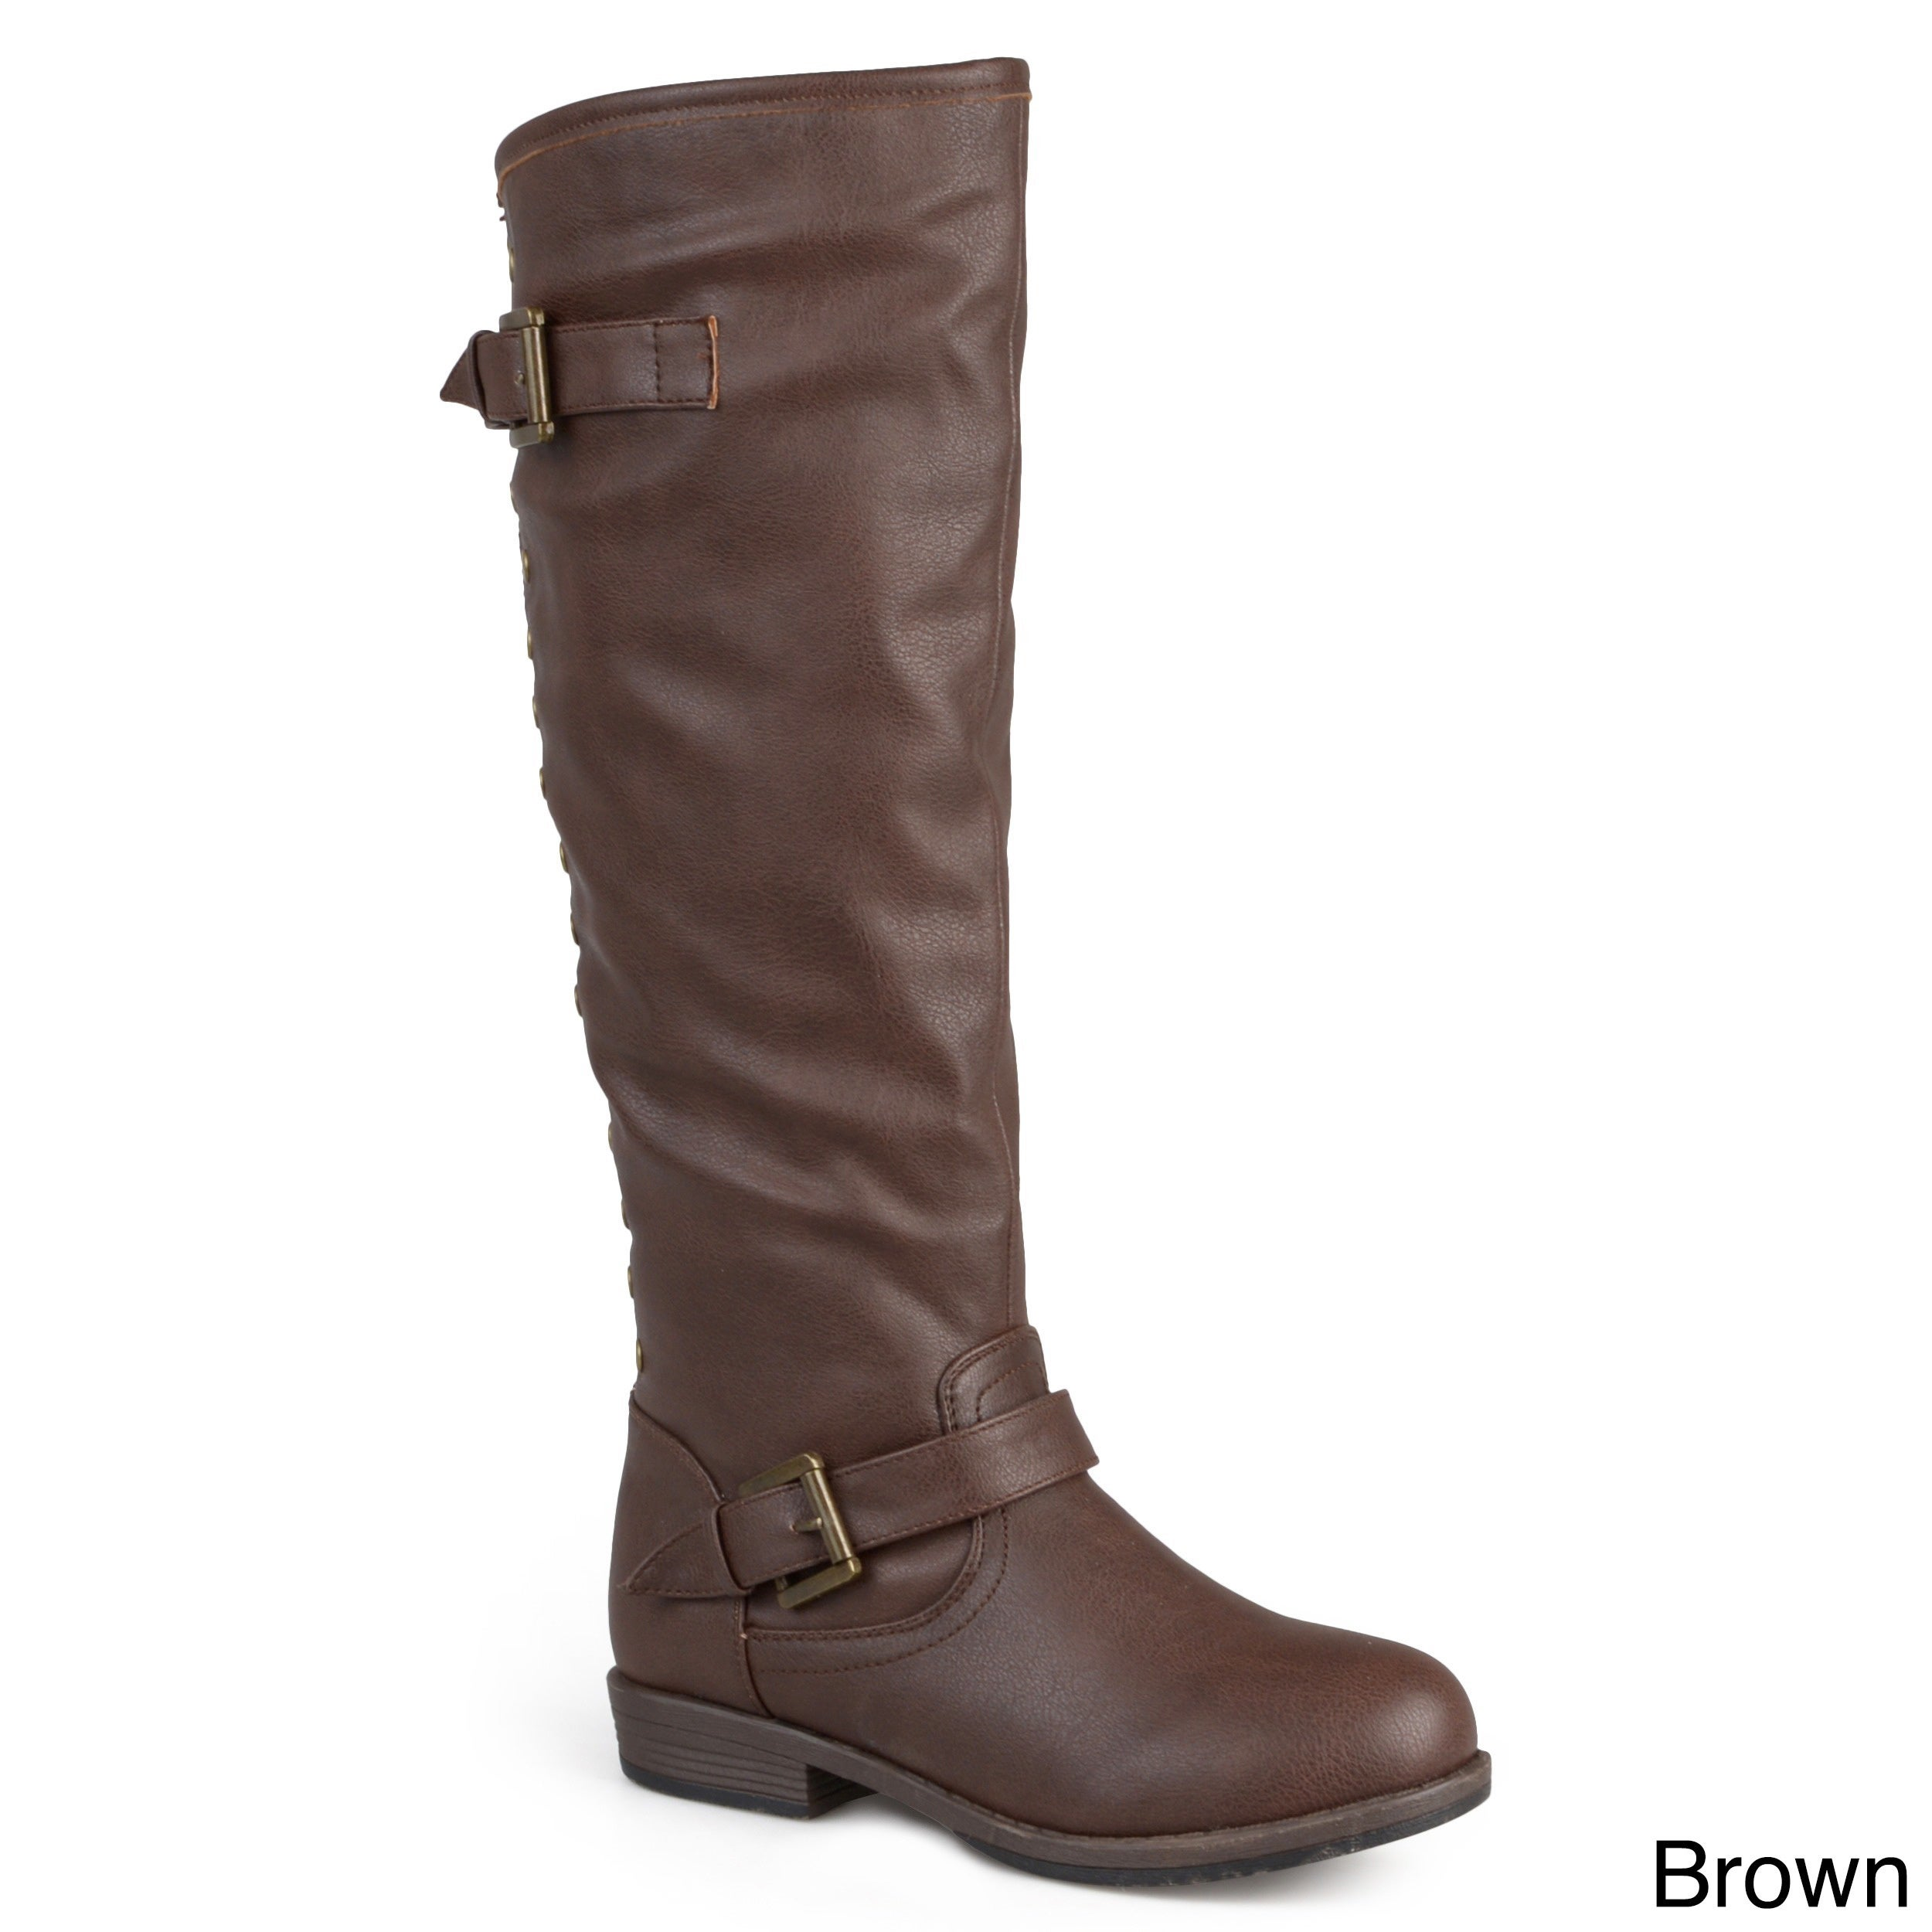 40e65cf48cfa Shop Journee Collection Women's 'Spokane' Red Zipper Riding Boot - Free  Shipping Today - Overstock - 8342906